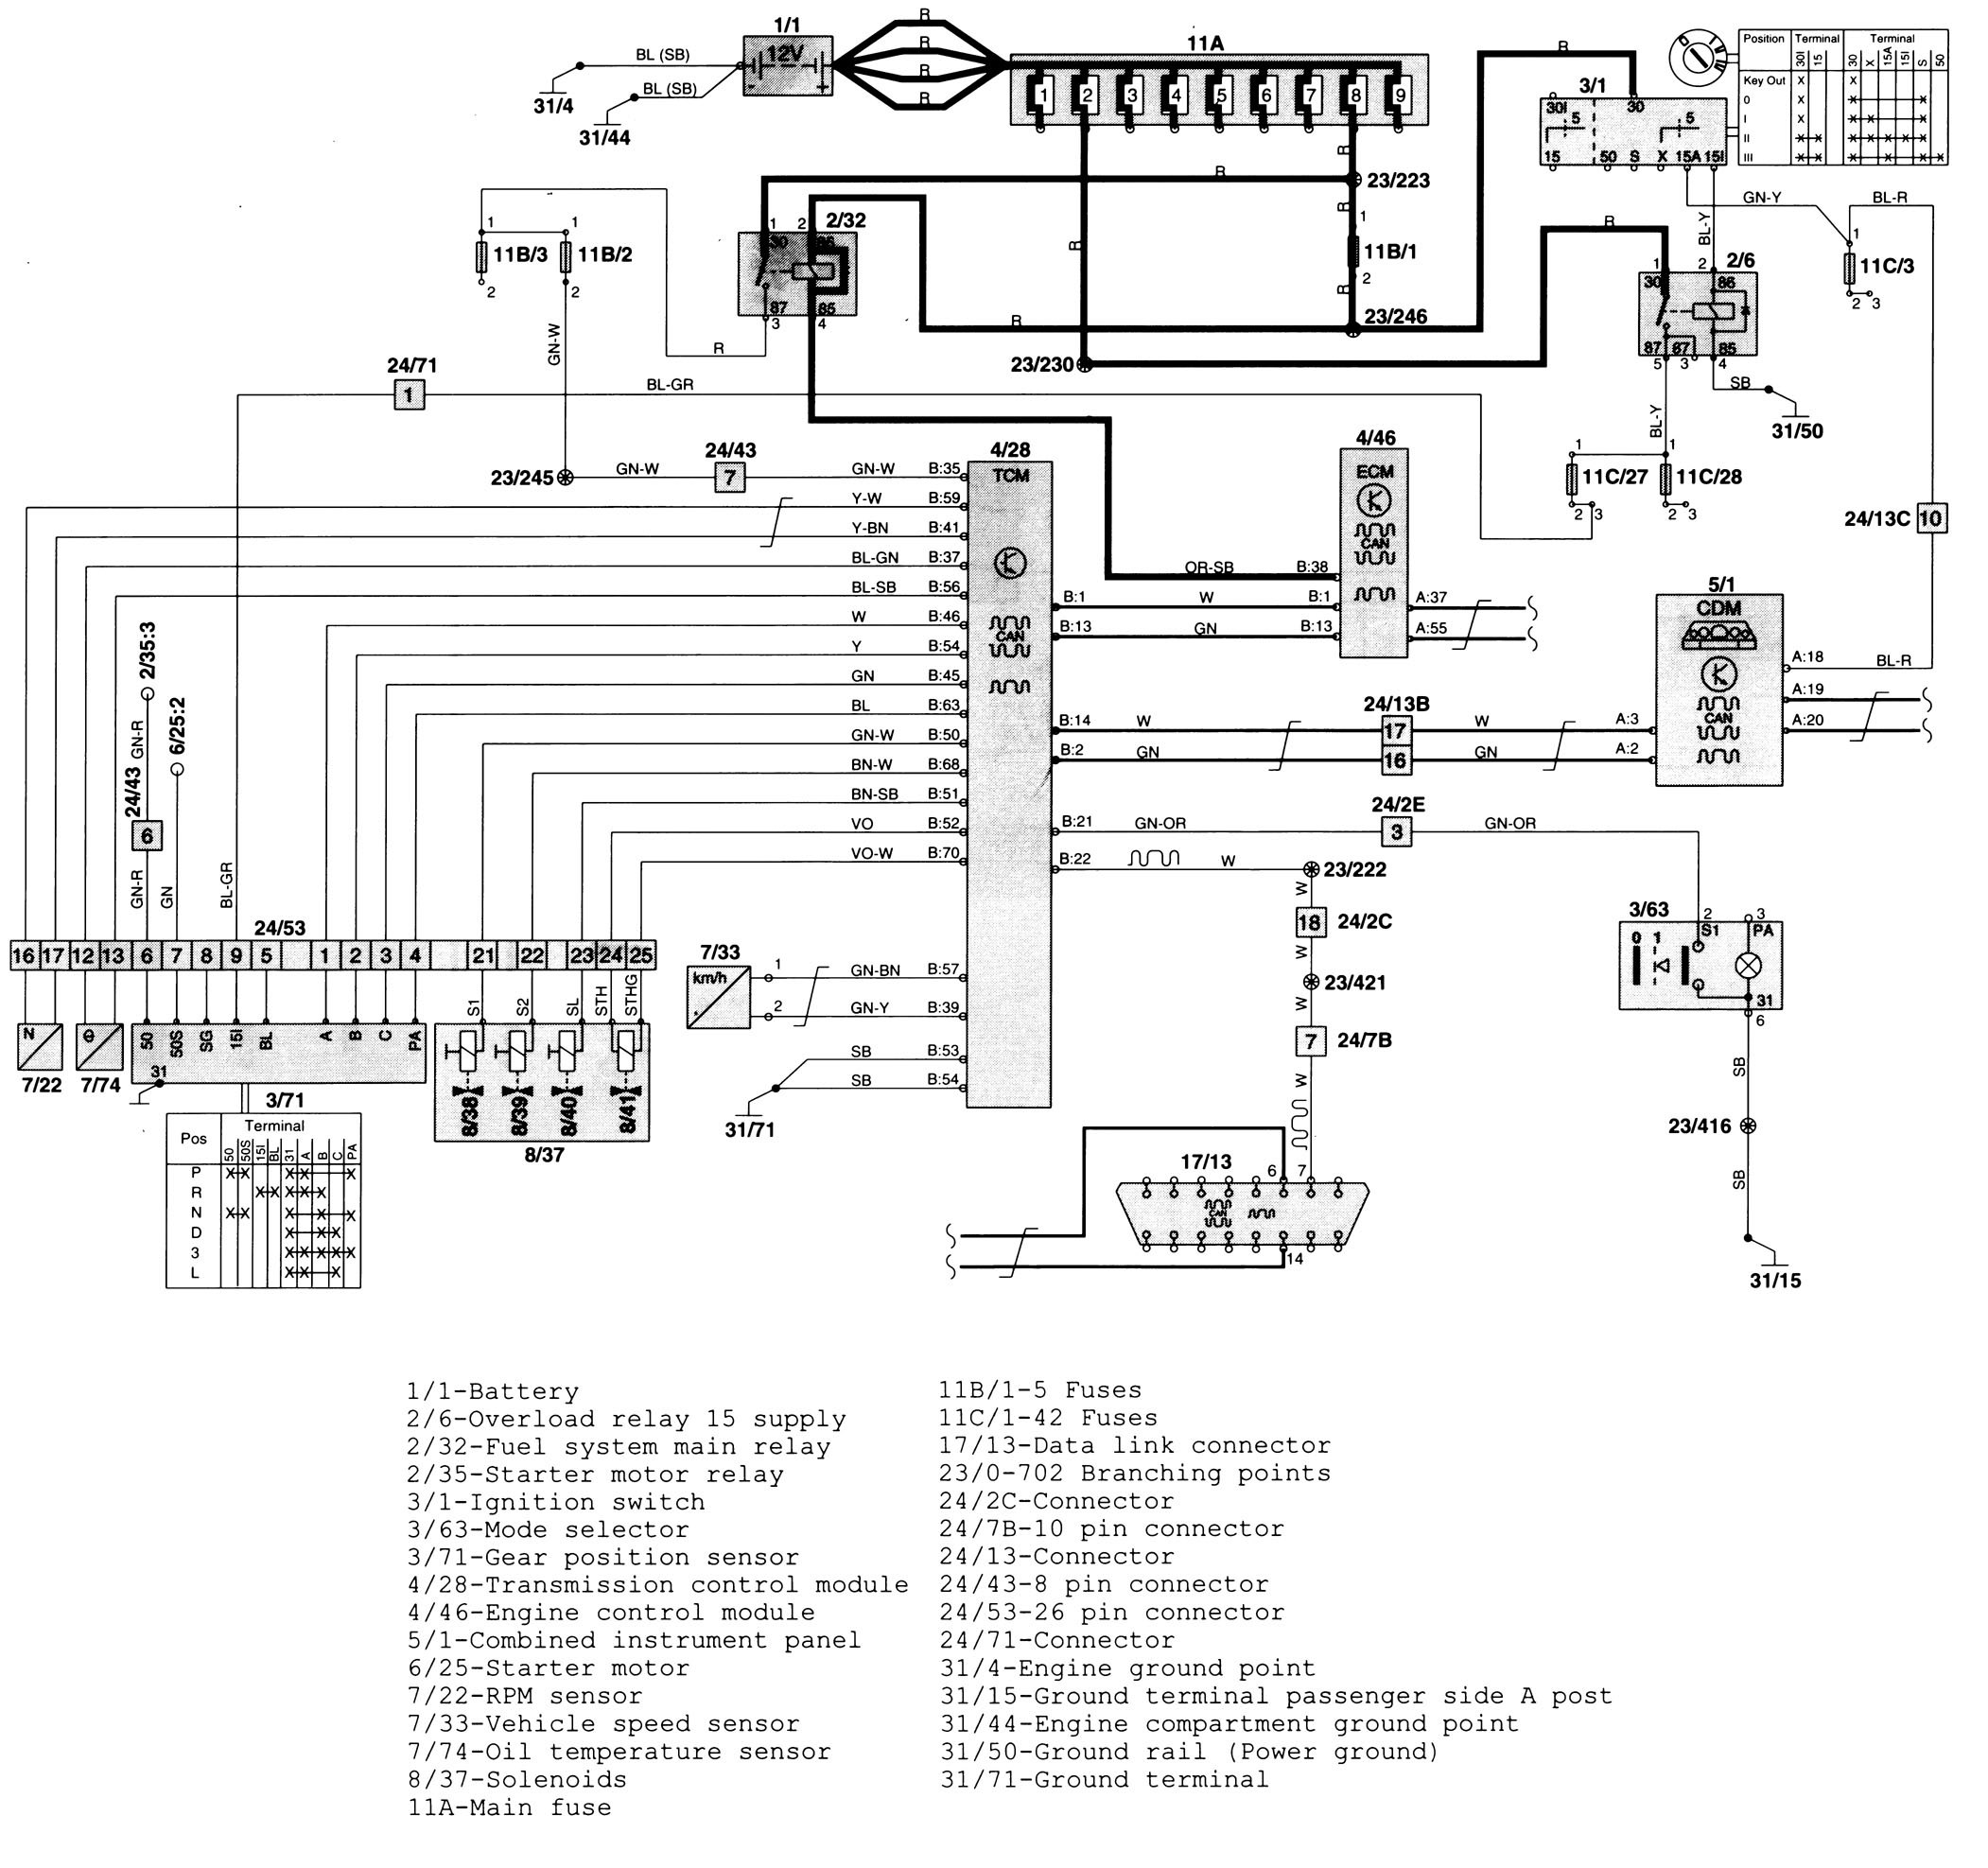 volvo c70 wiring diagram transmission controls 1999 volvo c70 (1999) wiring diagrams transmission controls 1999 volvo c70 wiring diagram at bayanpartner.co